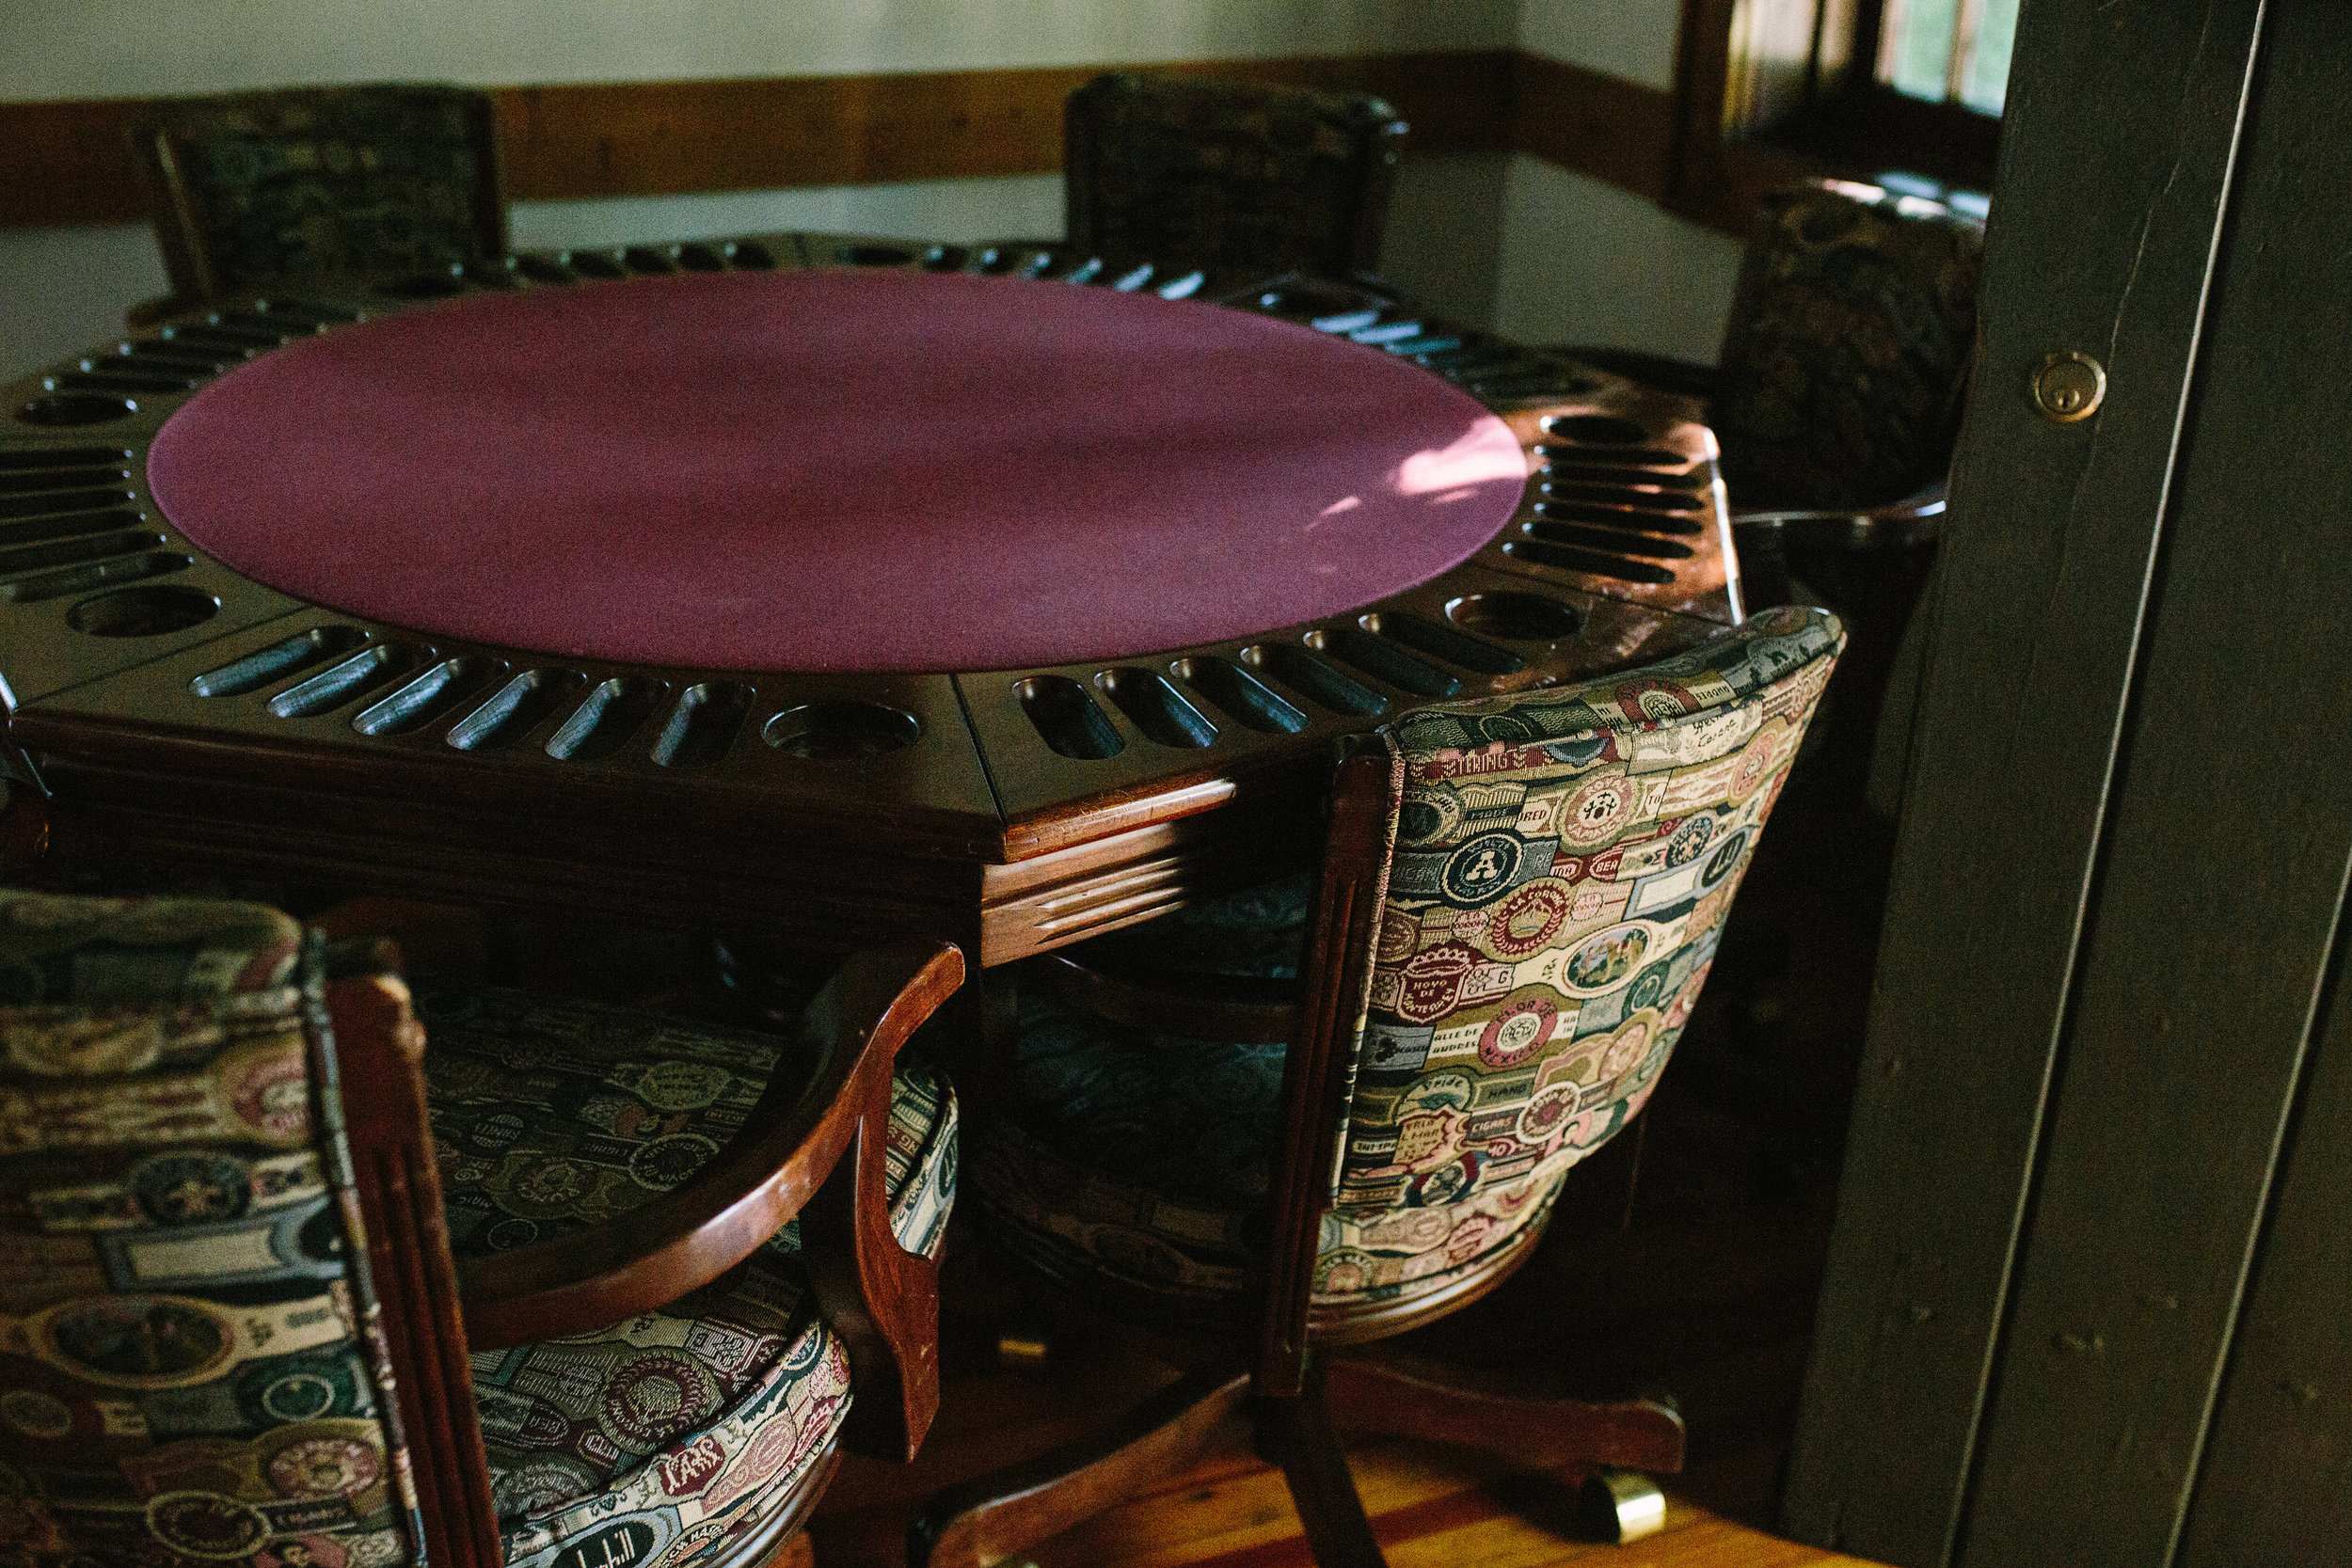 A poker table, ready for action.